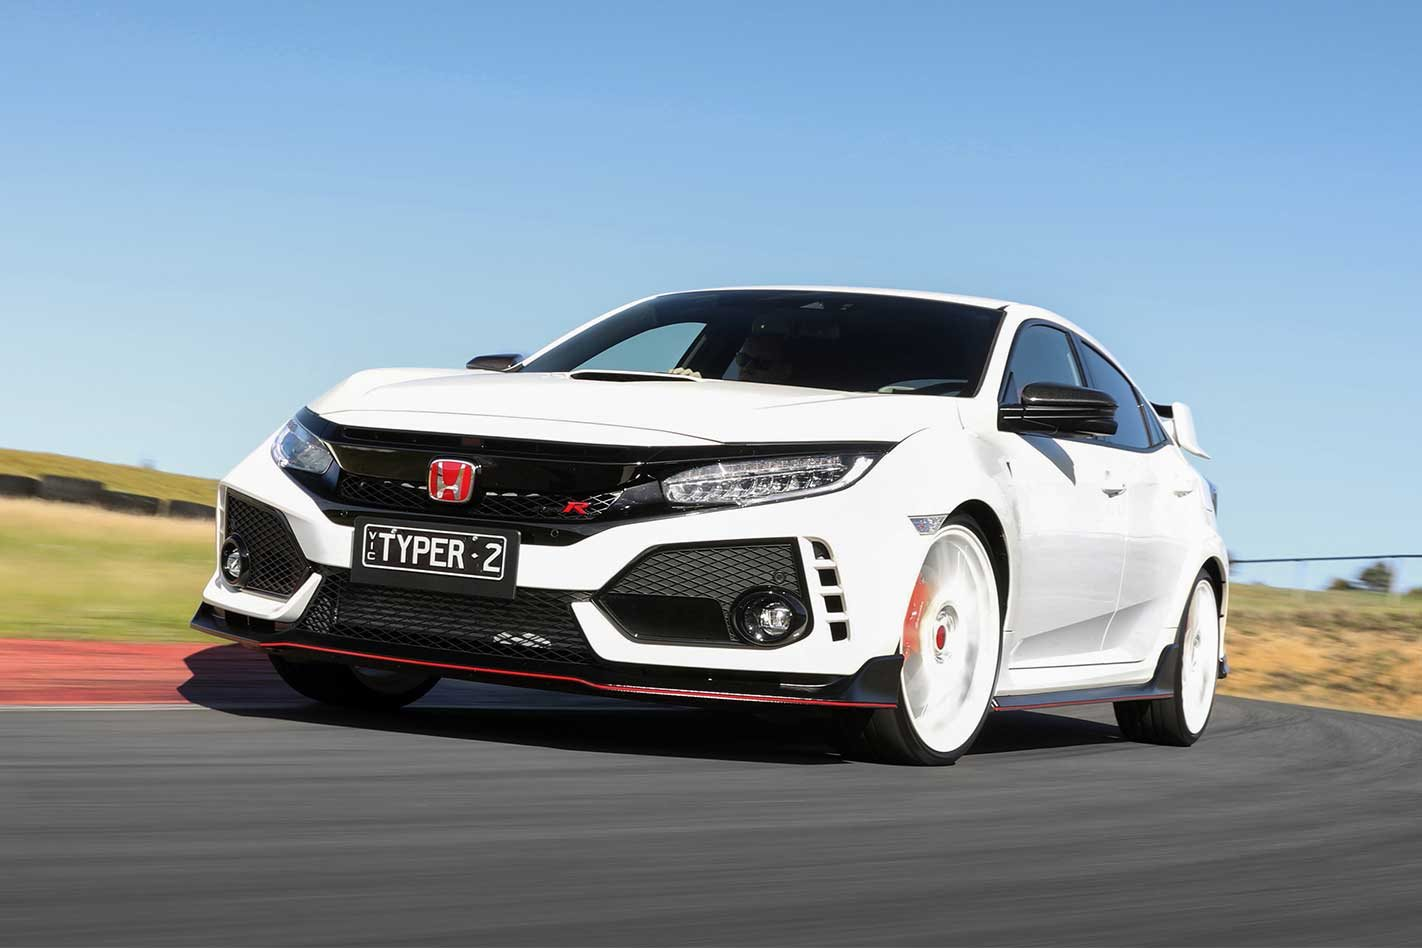 2018 Honda Civic Type R Carbon Accessories Review